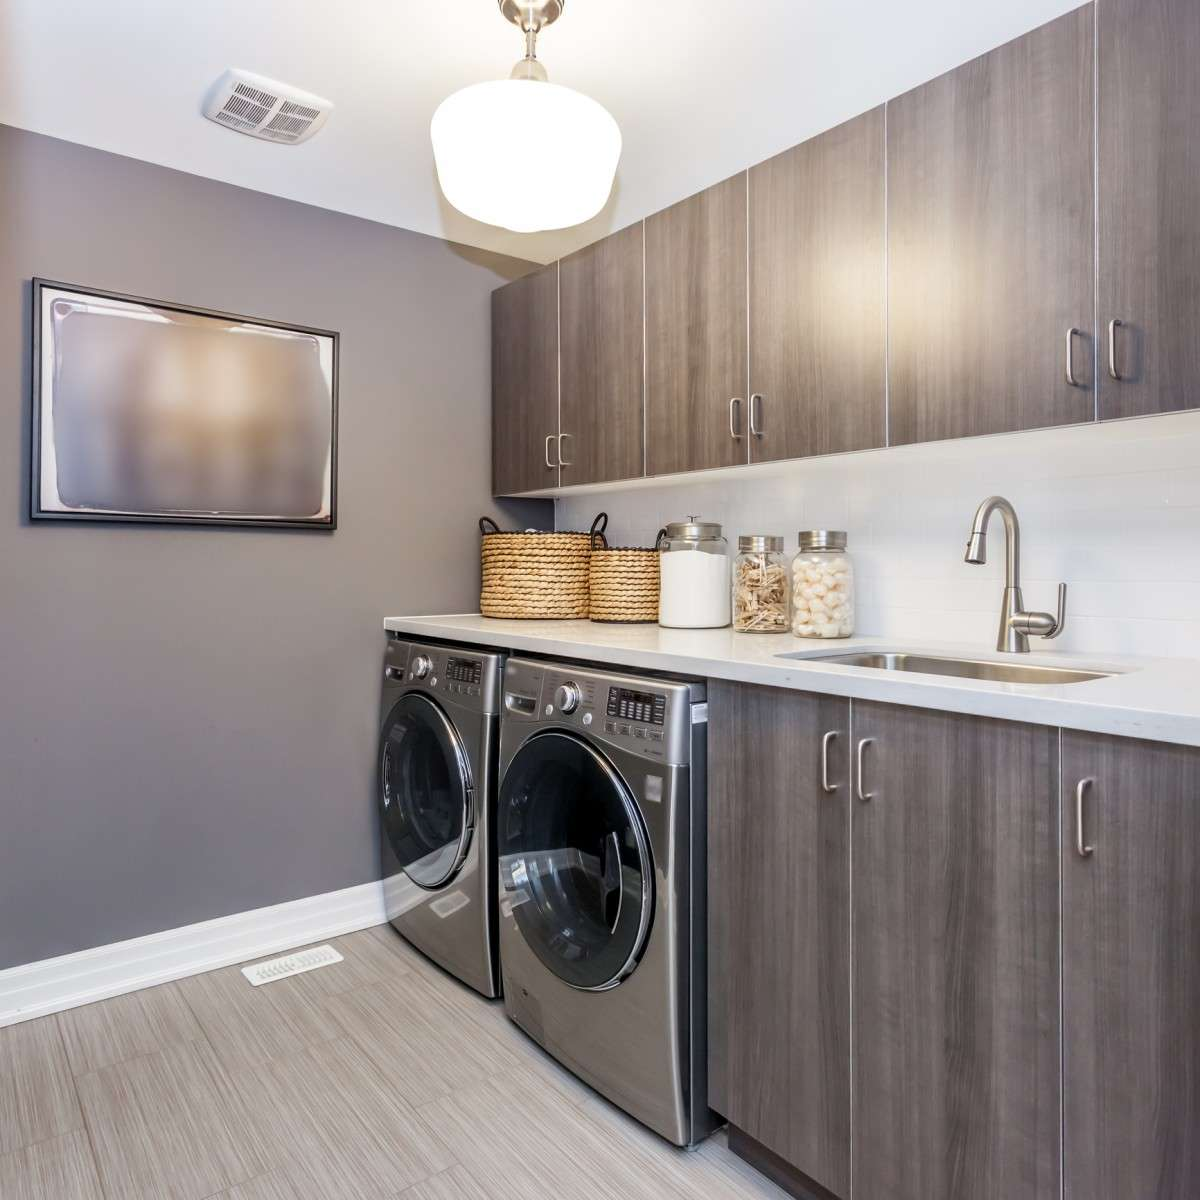 Managing Small Laundry Area With 7 Easy Steps